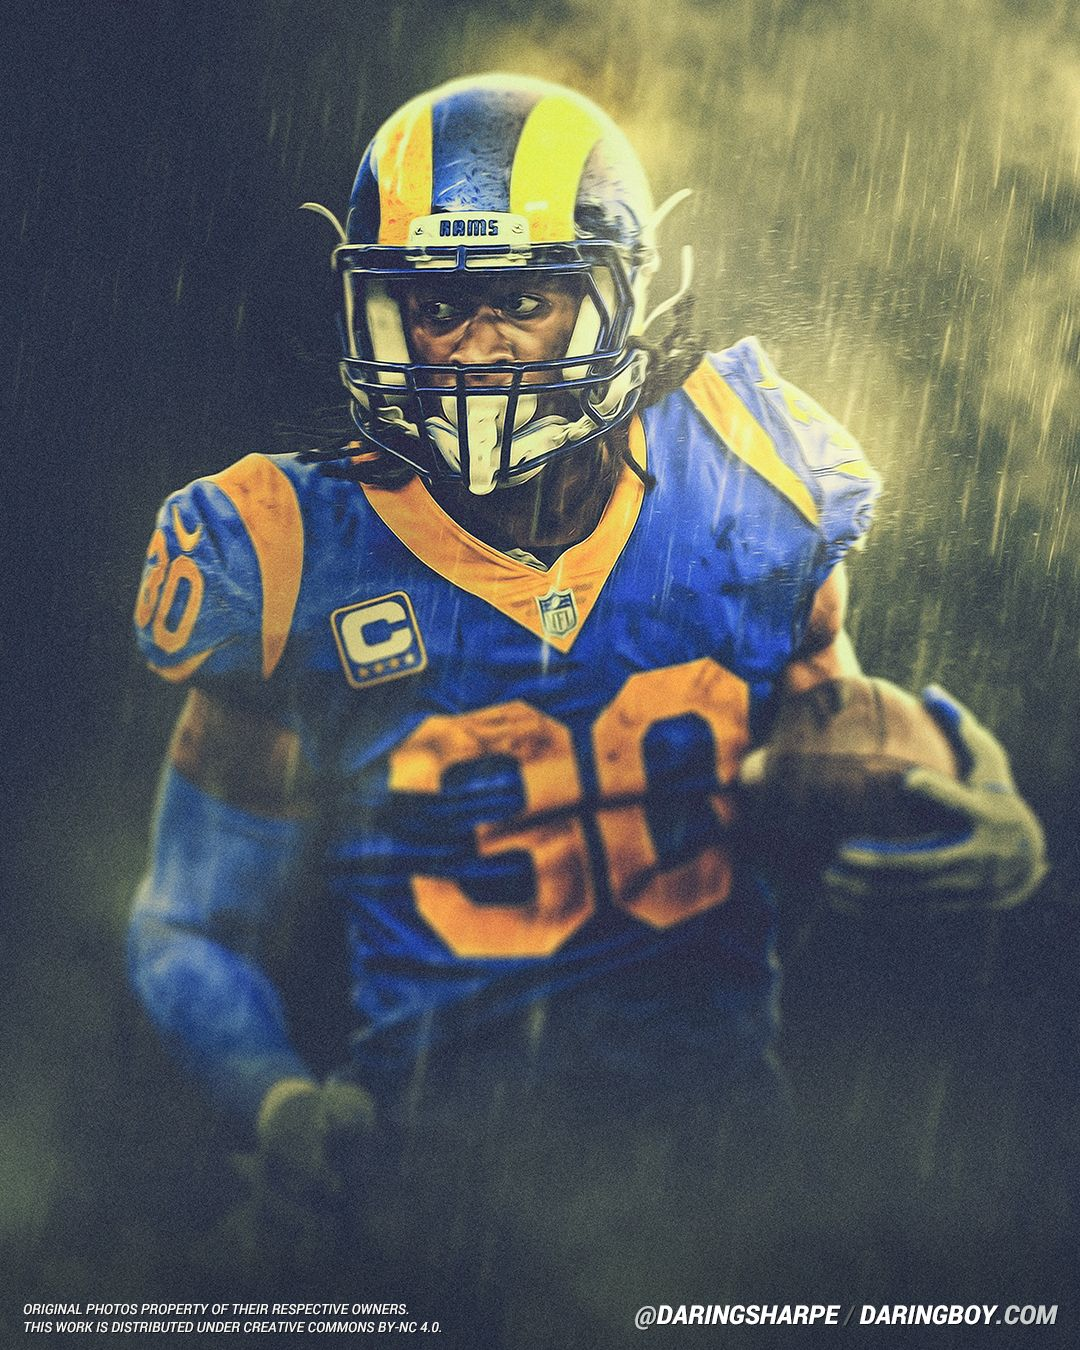 Todd Gurley Los Angeles Rams Daring Boy Interactive Los Angeles Rams Todd Gurley Nfl Football Art